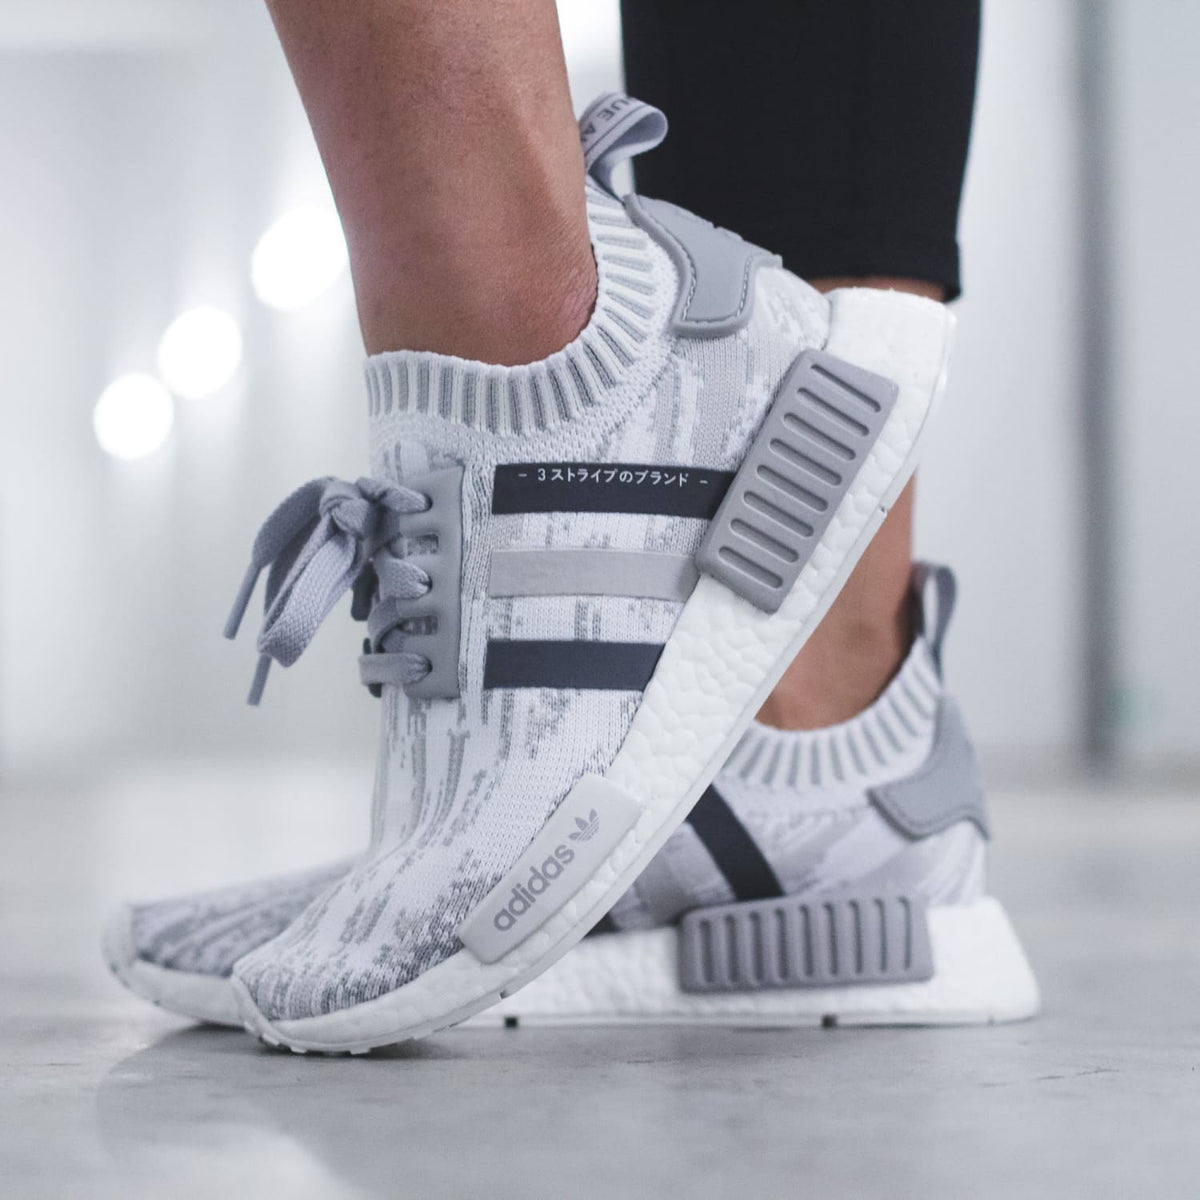 Adidas Originals Nmd R1 R2 Pk Japan Pack Mens R2 By9696